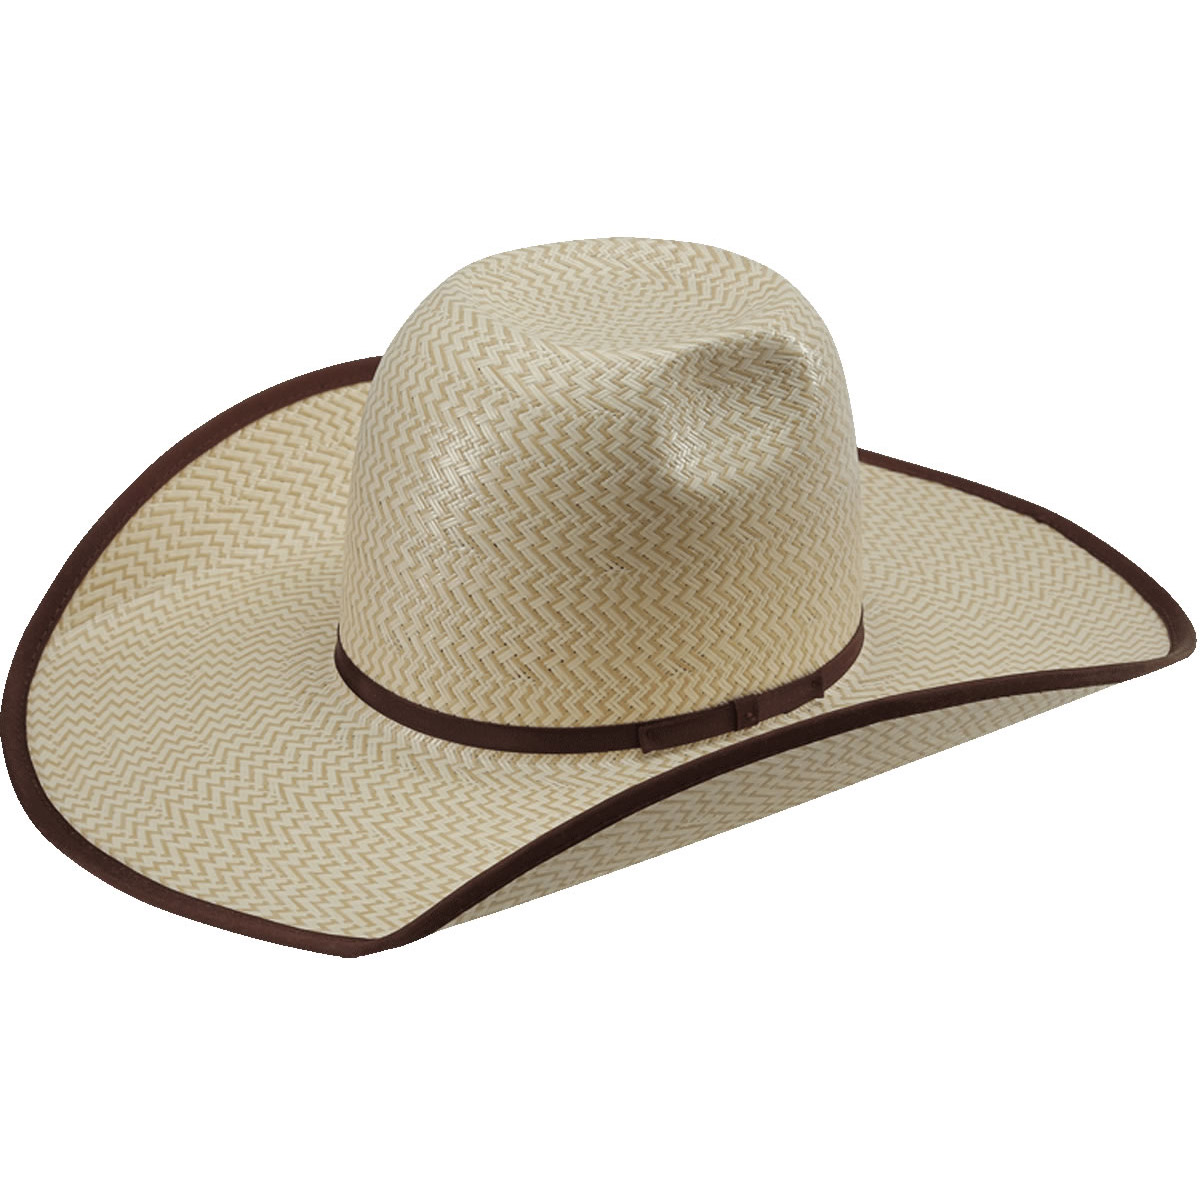 Pungo Ridge - American Hat Co 15☆ 3X3 Two-Tone Shantung Straw Hat ... ec240a72d1a